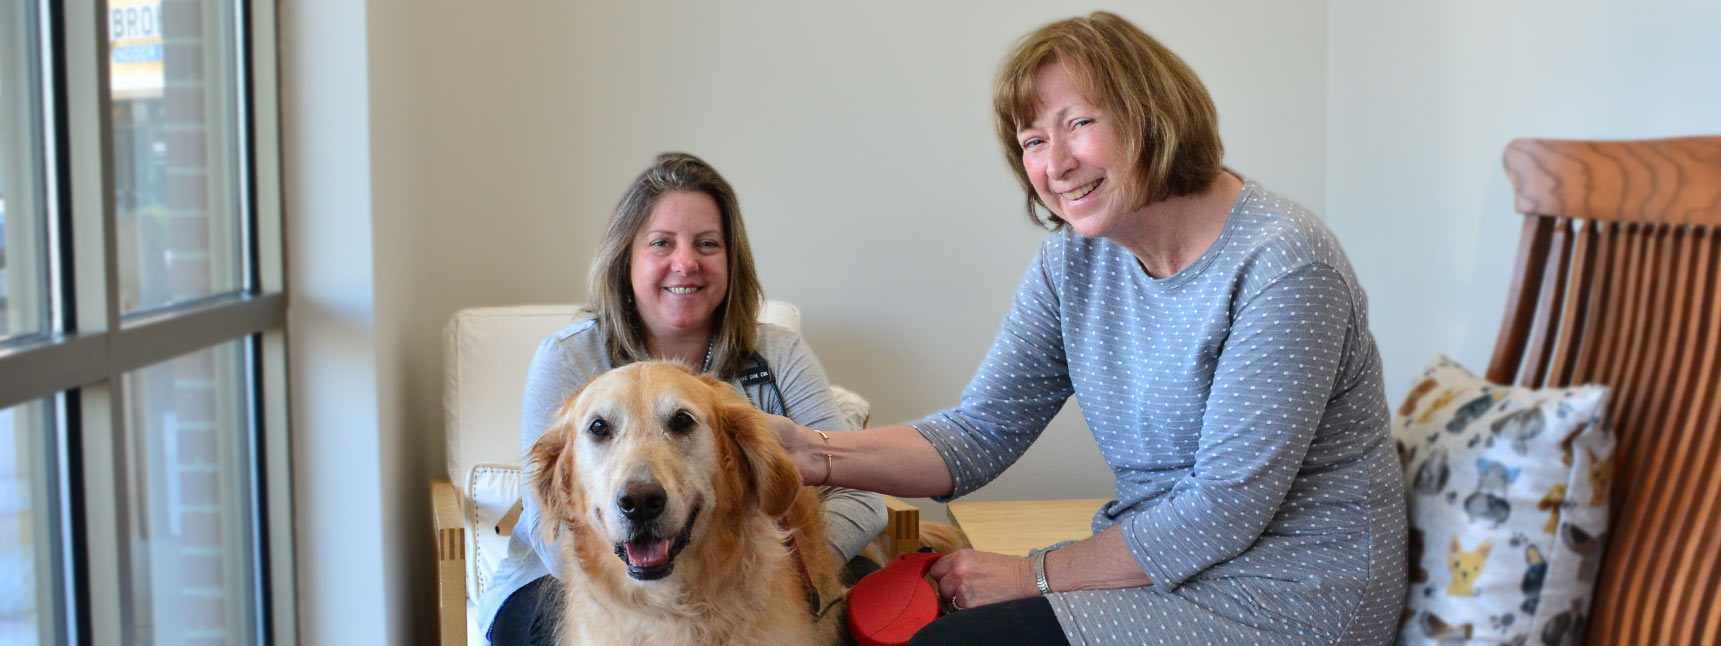 Canine Wellness in Waukee IA